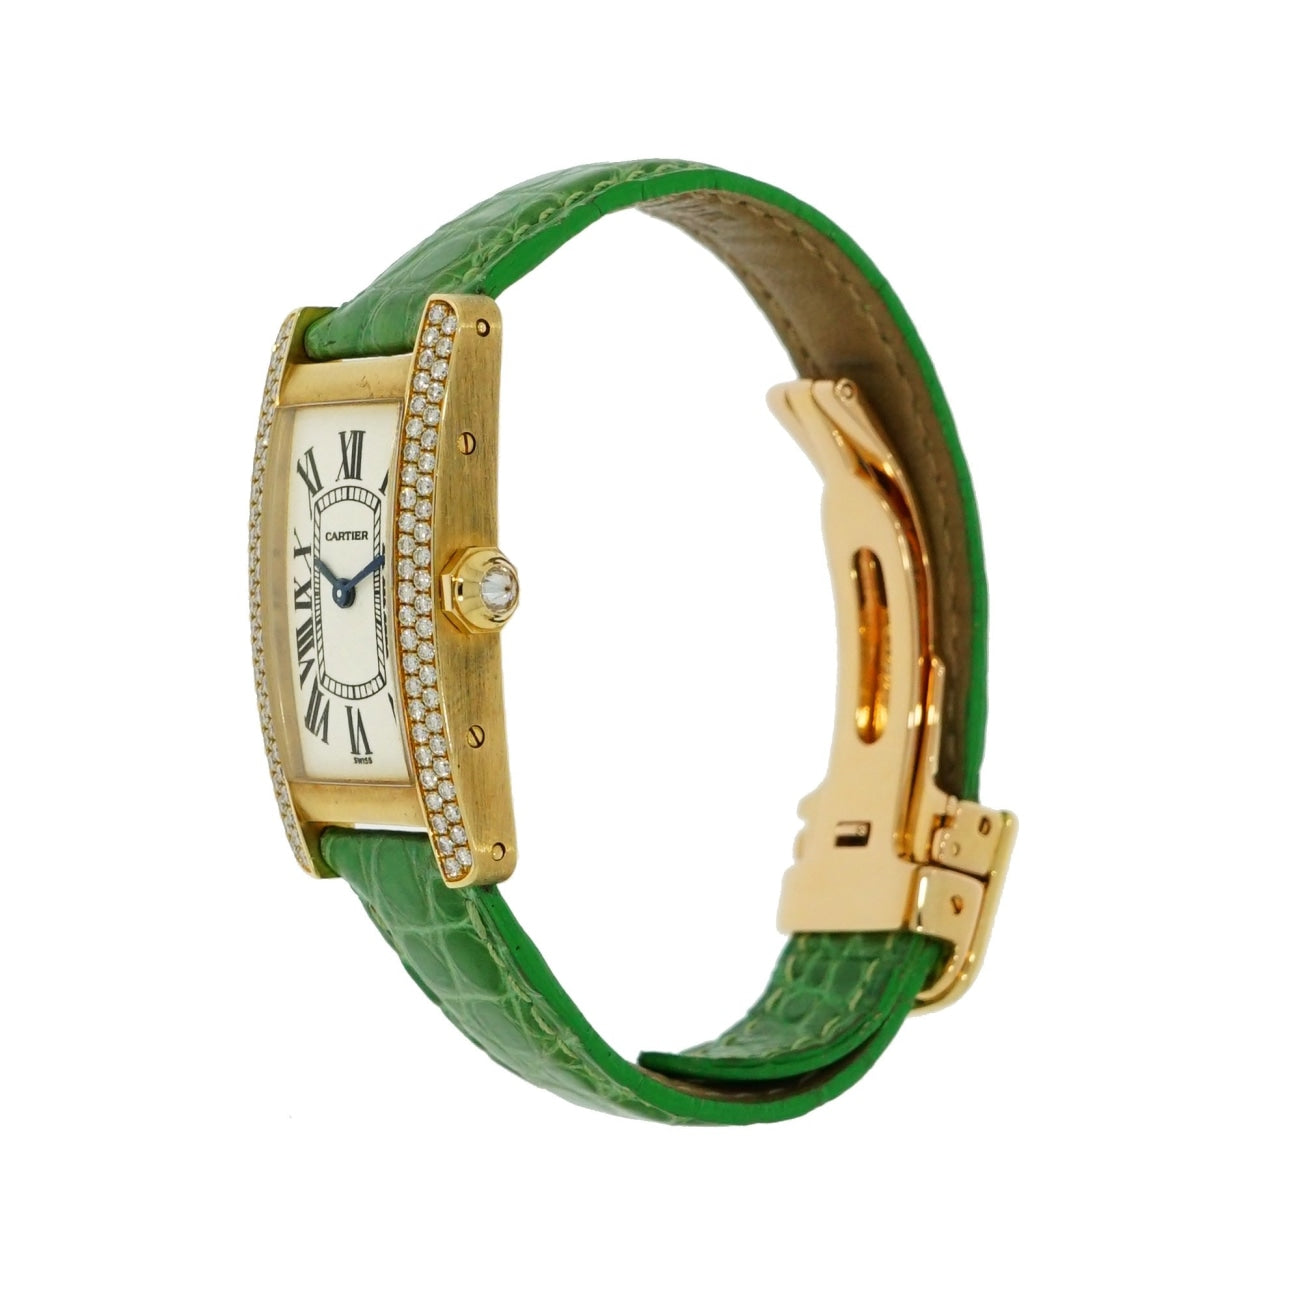 Pre-Owned Cartier Watches - Tank Americaine Diamond Bezel in 18 Karat Yellow Gold 1710 | Manfredi Jewels